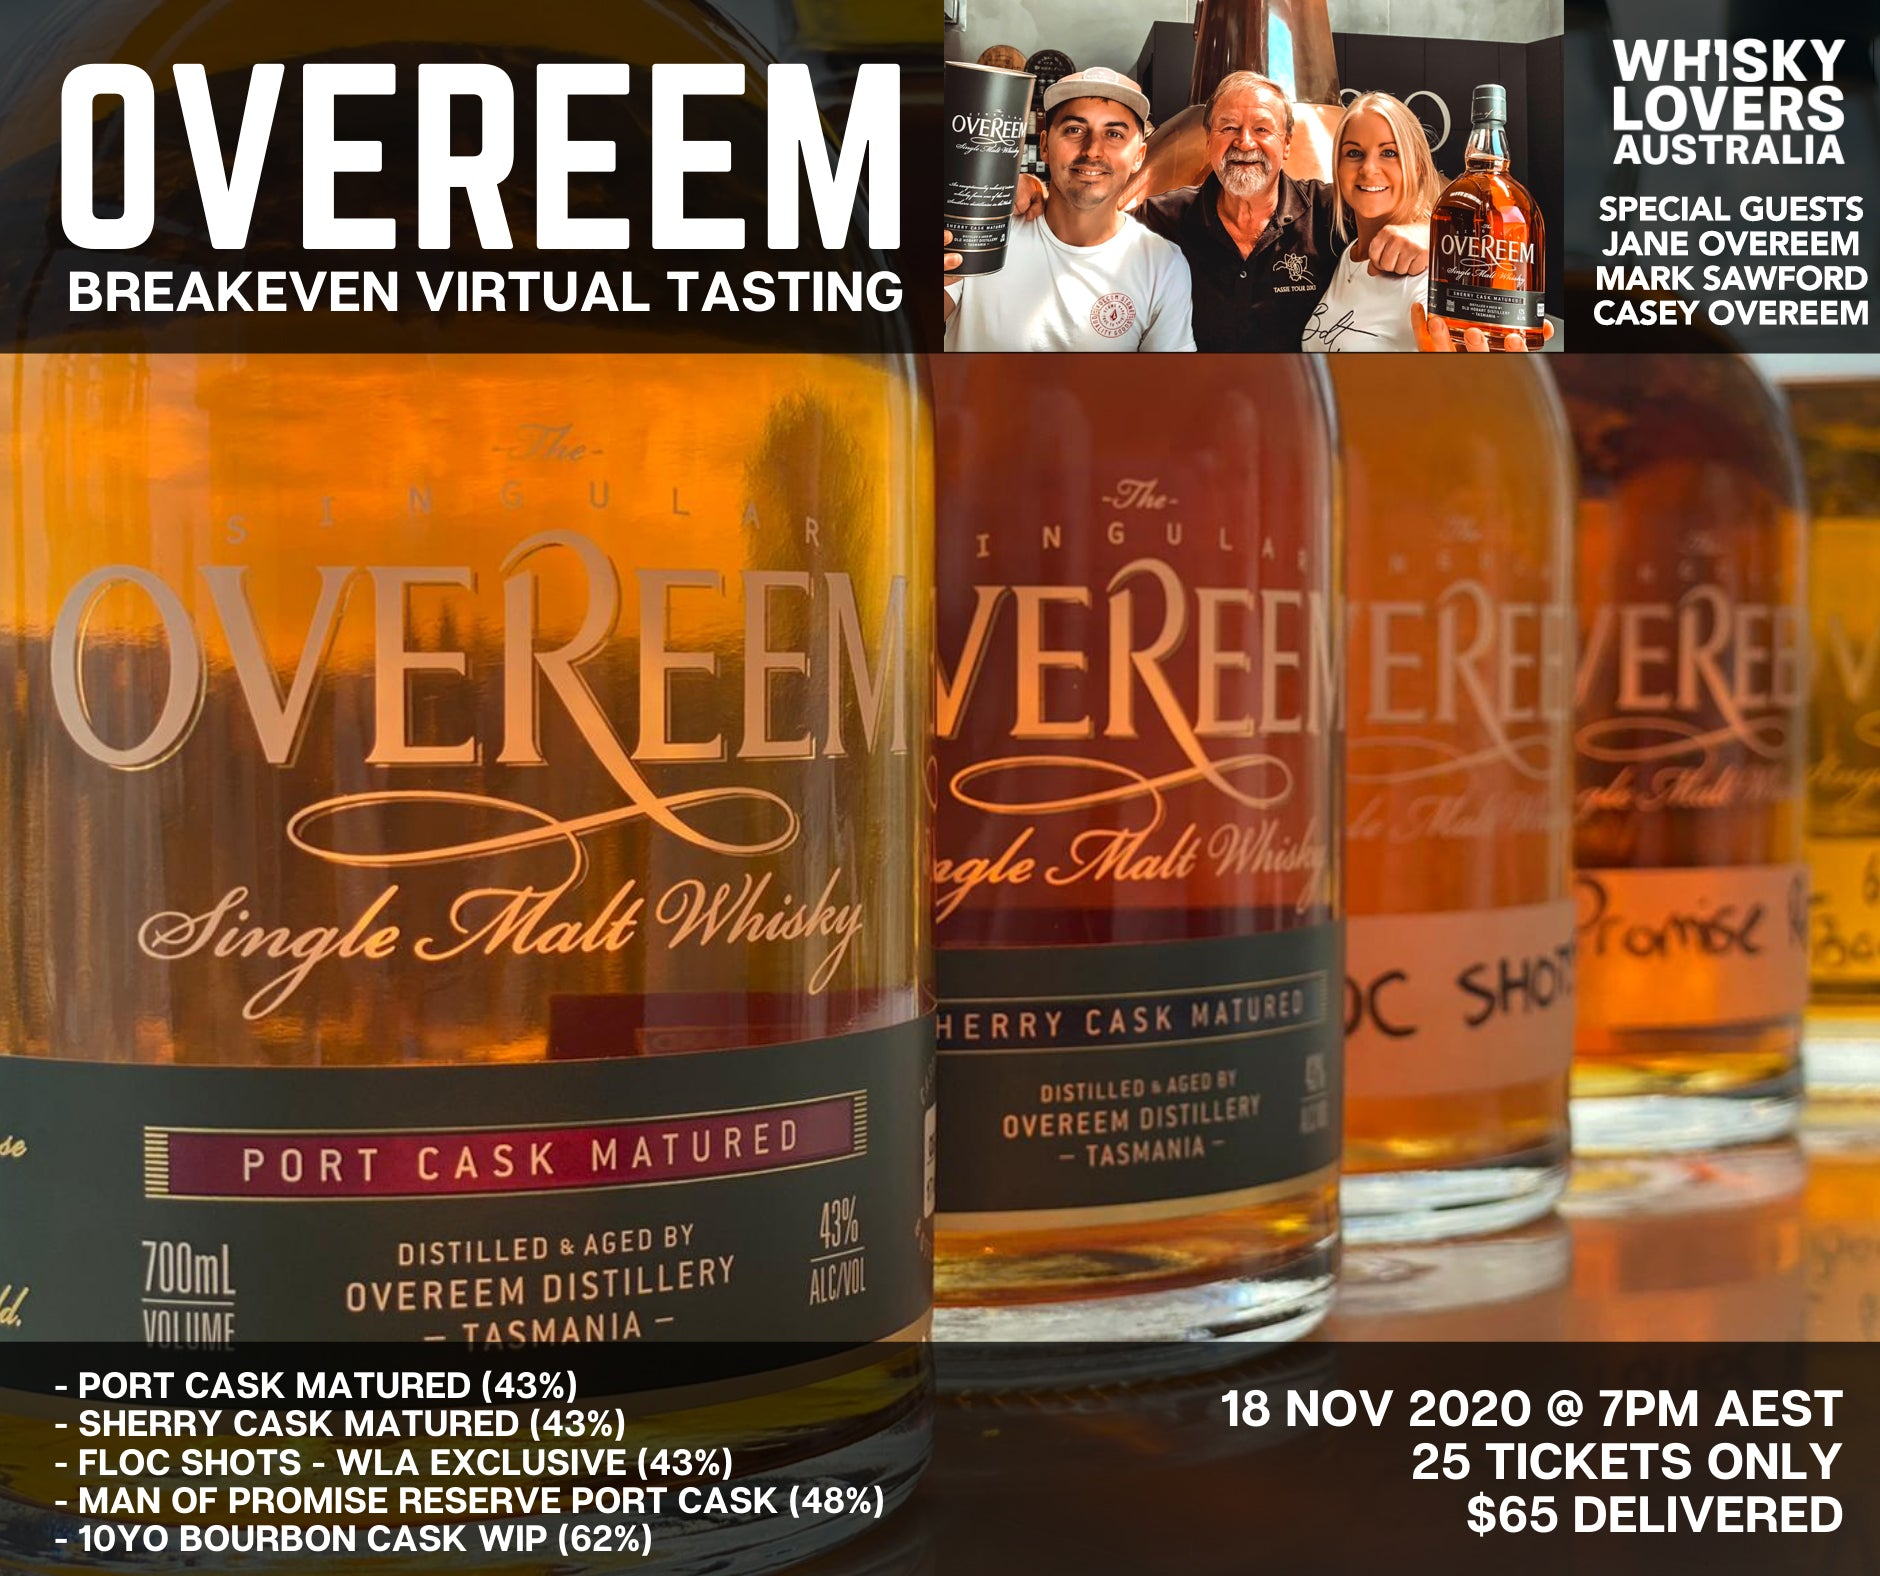 WLA Overeem Breakeven Virtual Tasting